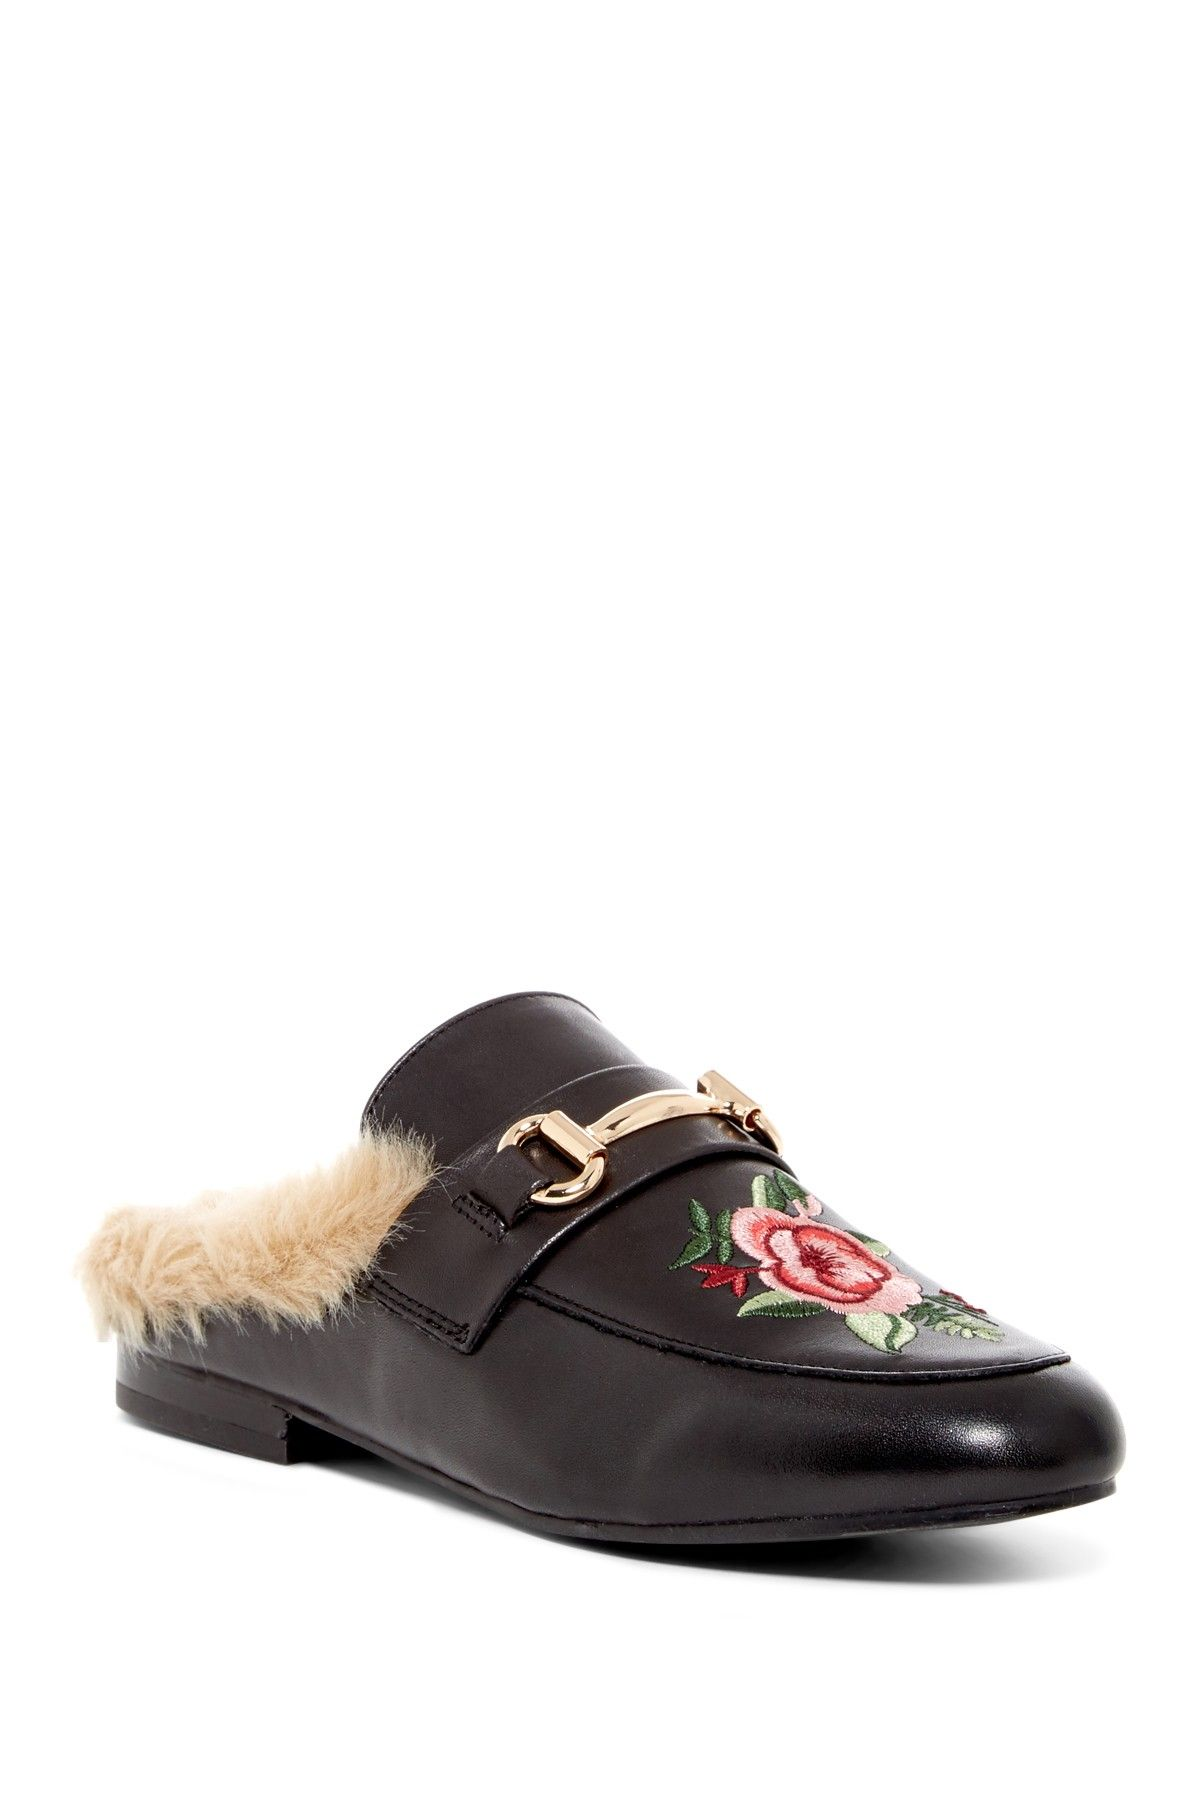 9335579900c Steve Madden | Jill Embroidered Faux Fur Trim Leather Mule ...